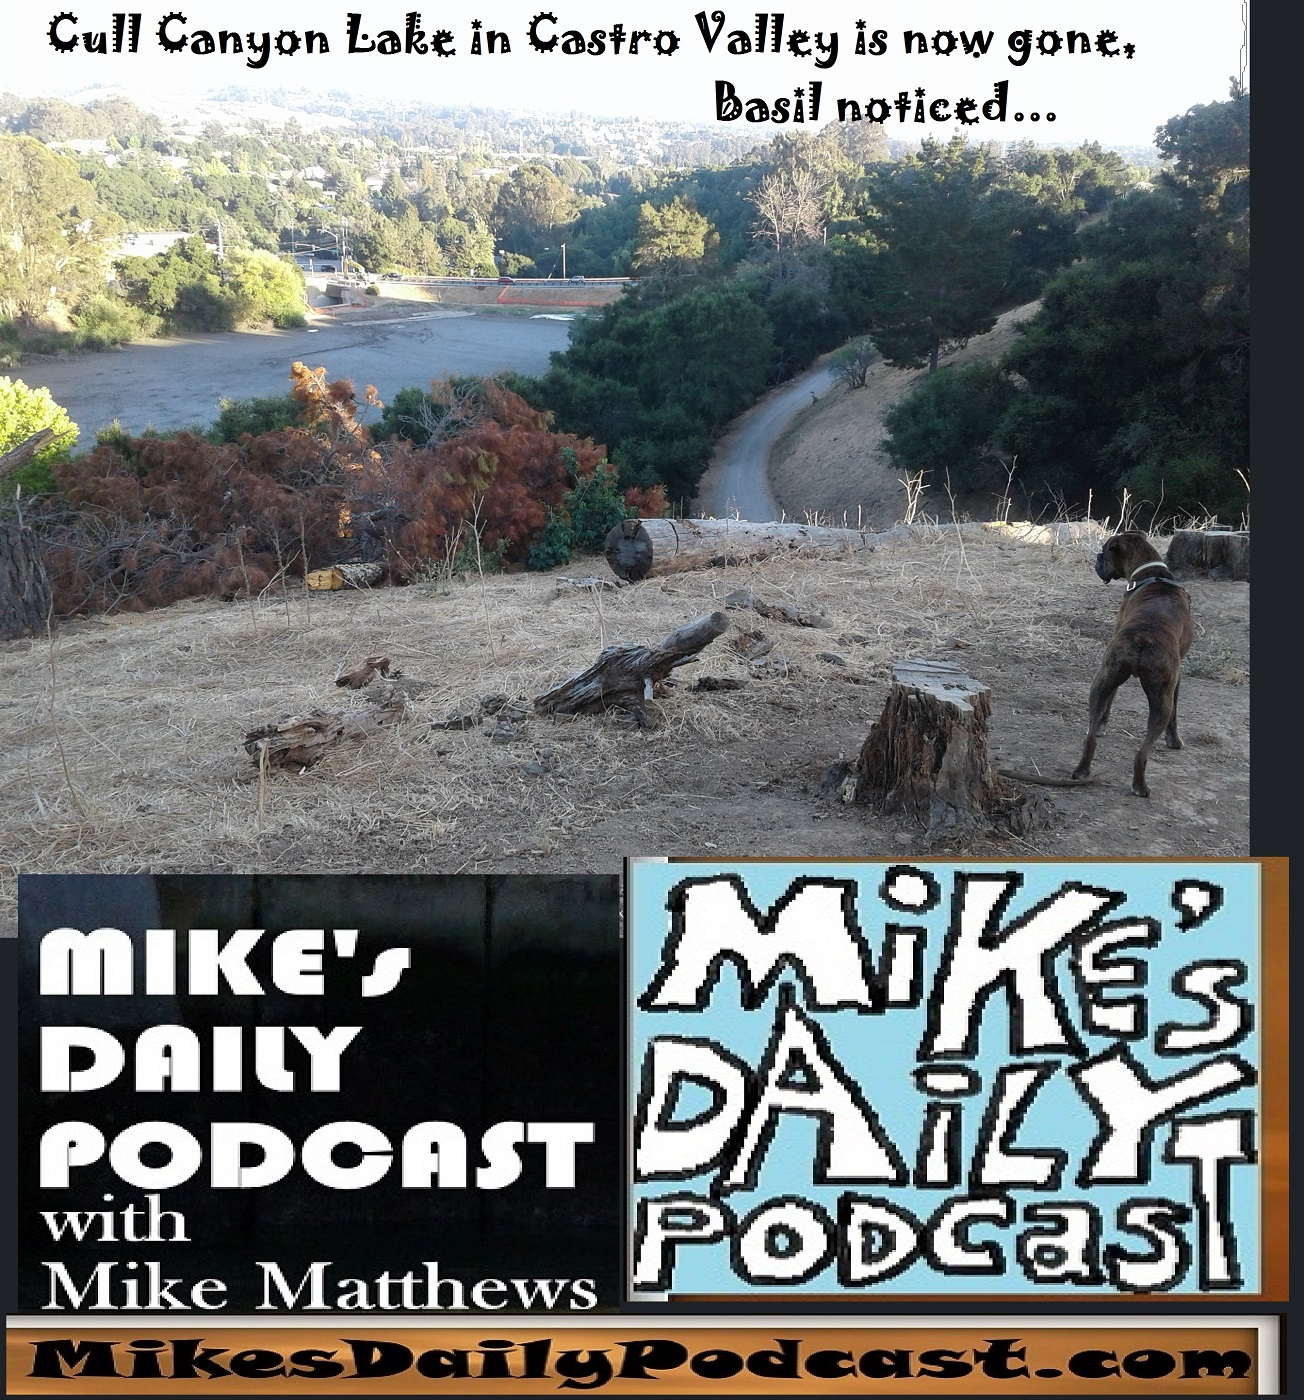 MIKEs DAILY PODCAST 1144 Cull Canyon Lake dry Basil